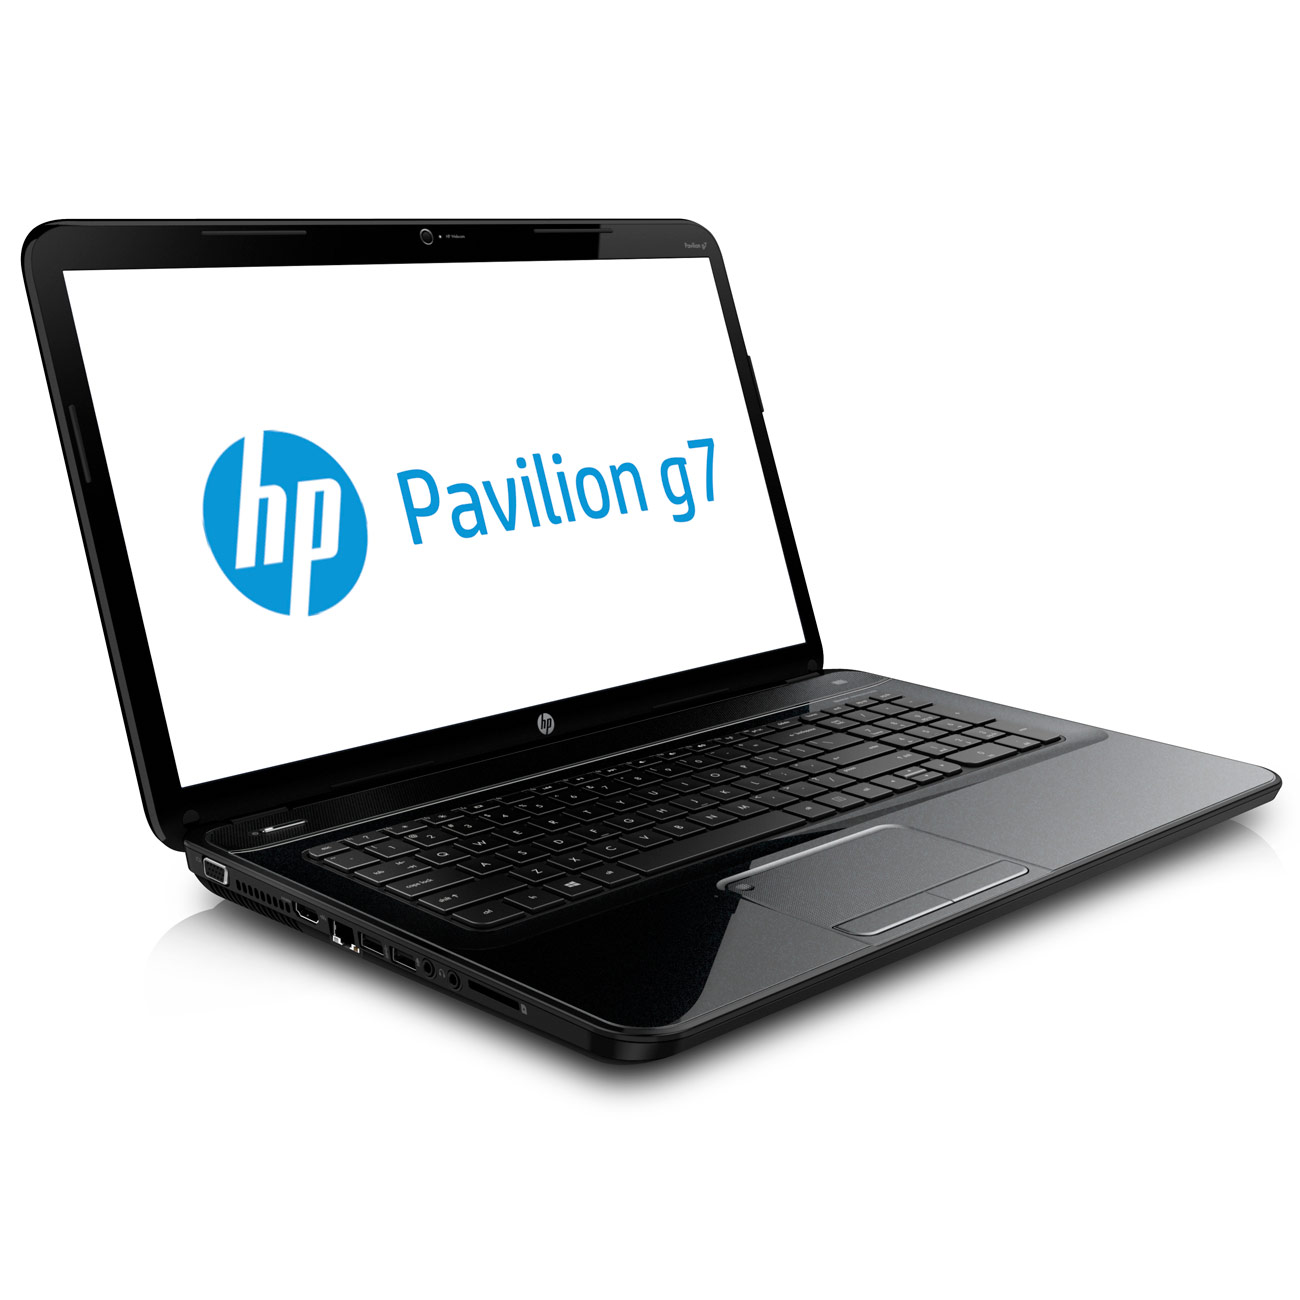 "PC portable HP Pavilion g7-2242sf (C1S68EA) Intel Pentium B980 4 Go 750 Go 17.3"" LED Graveur DVD Wi-Fi N Webcam Windows 8 64 bits"